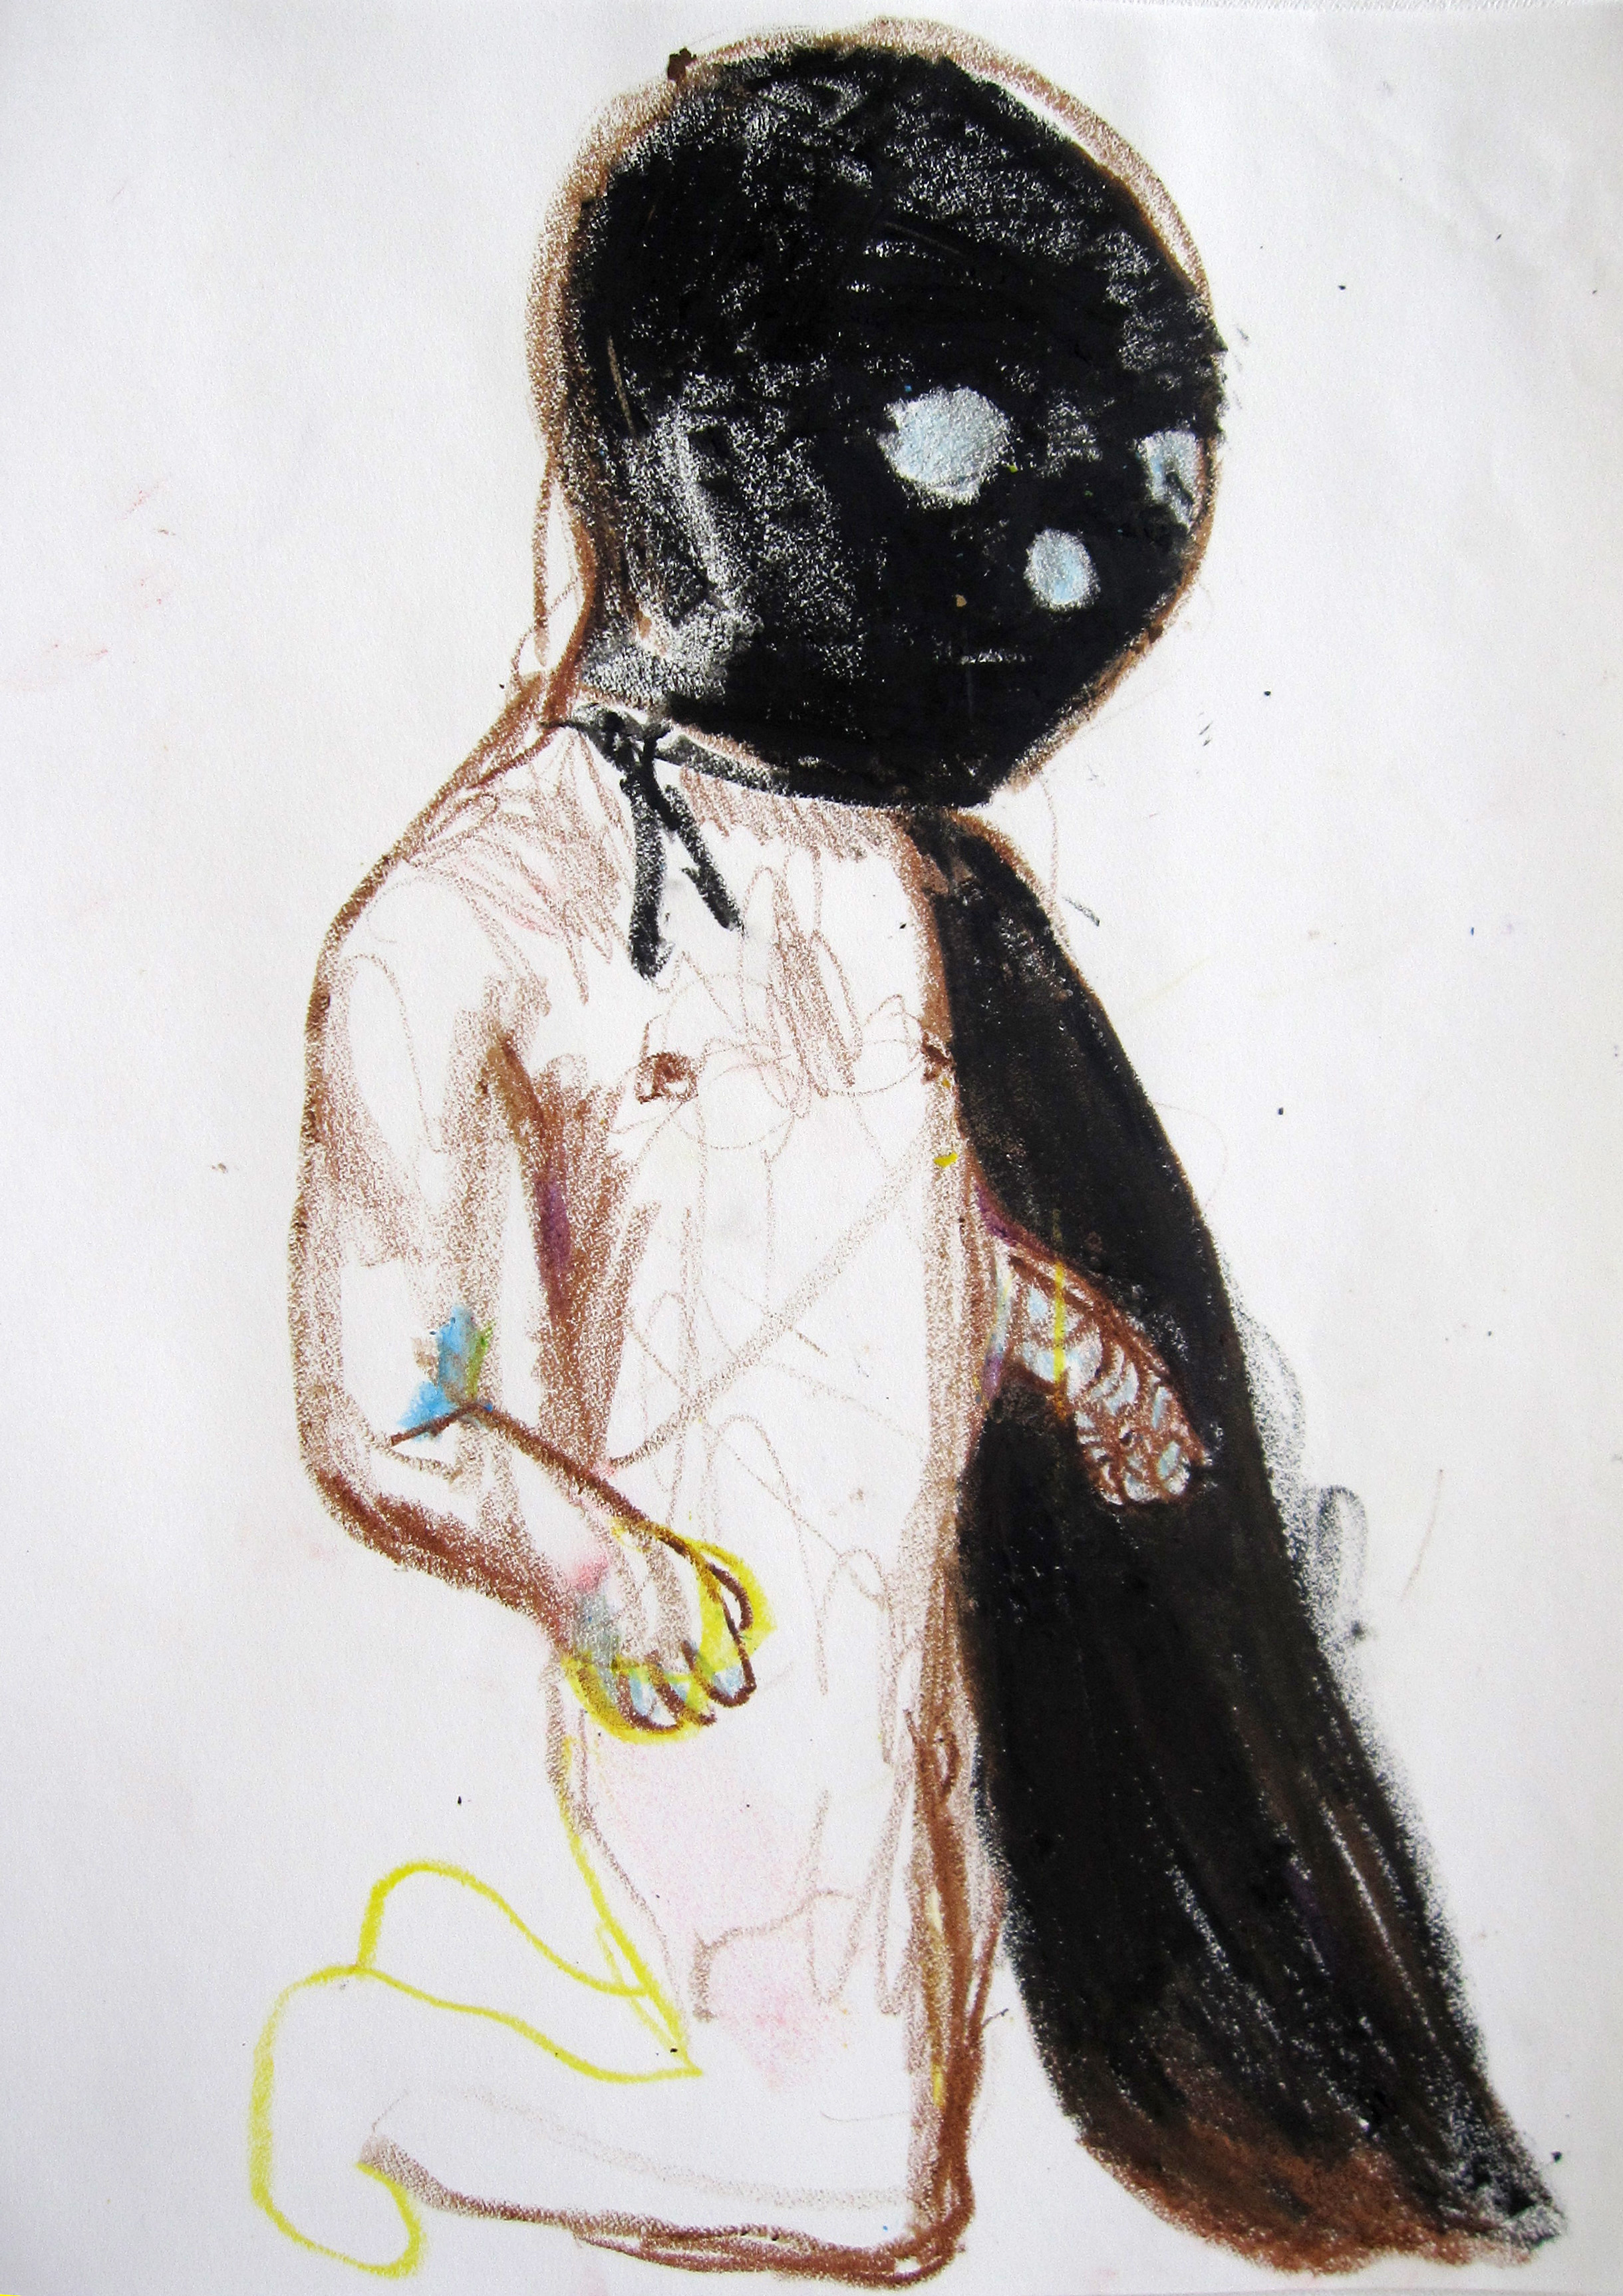 Lucha 7, 2008, Crayon on paper, 14 X11 in.